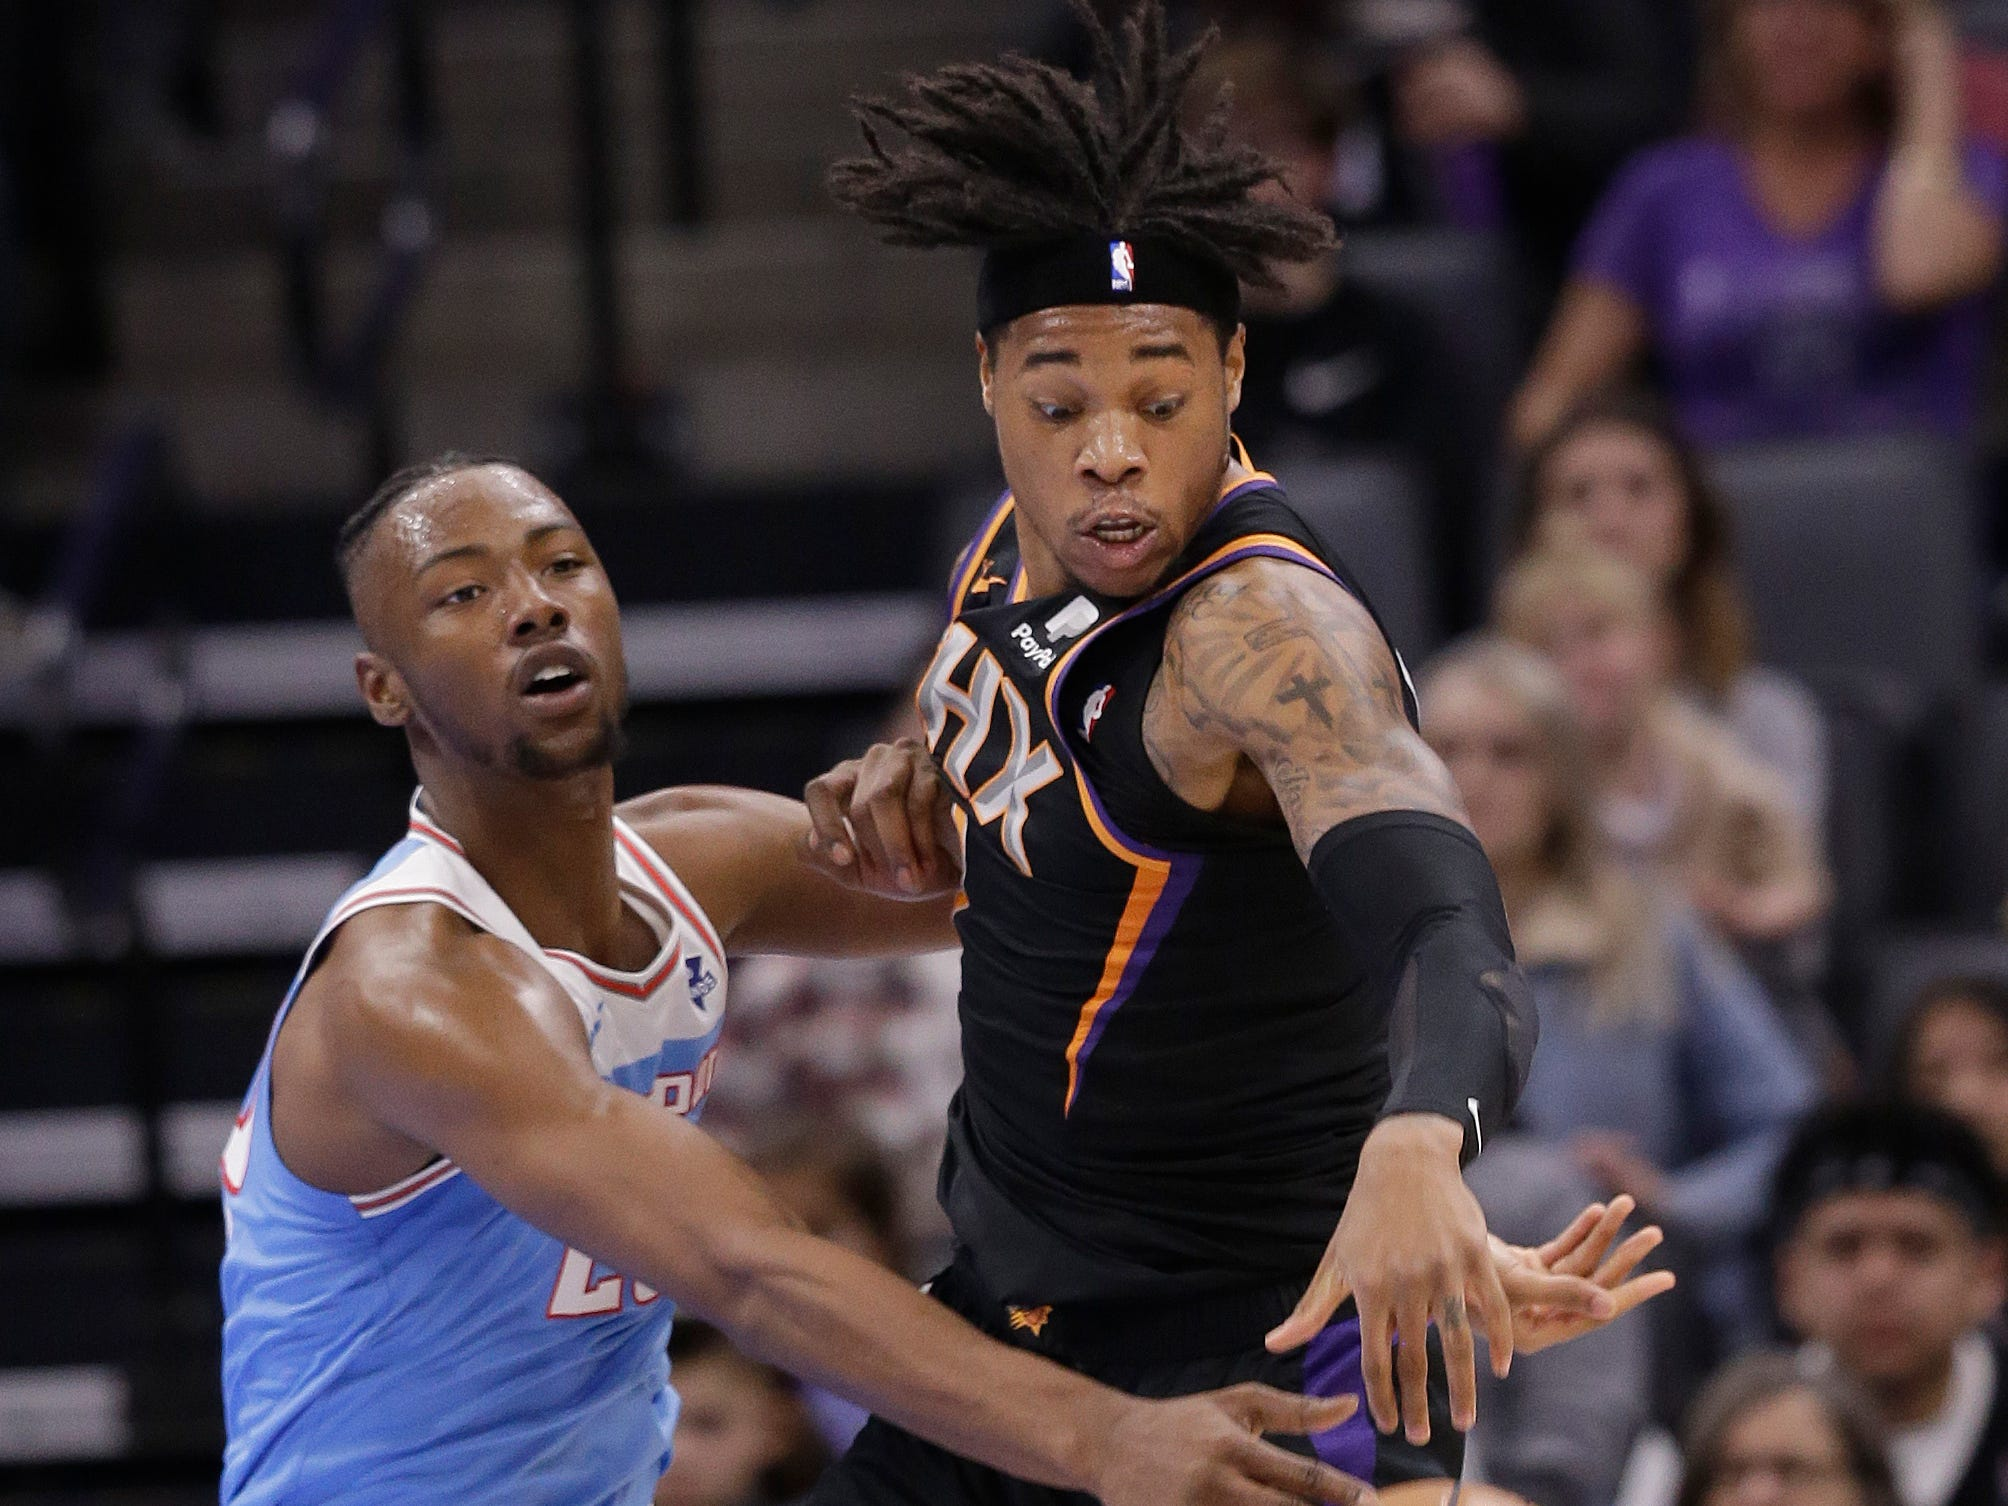 Phoenix Suns forward Richaun Holmes, right, tries to steal a pass intended for Sacramento Kings forward Harry Giles during the first half of an NBA basketball game Sunday, Feb. 10, 2019, in Sacramento, Calif.